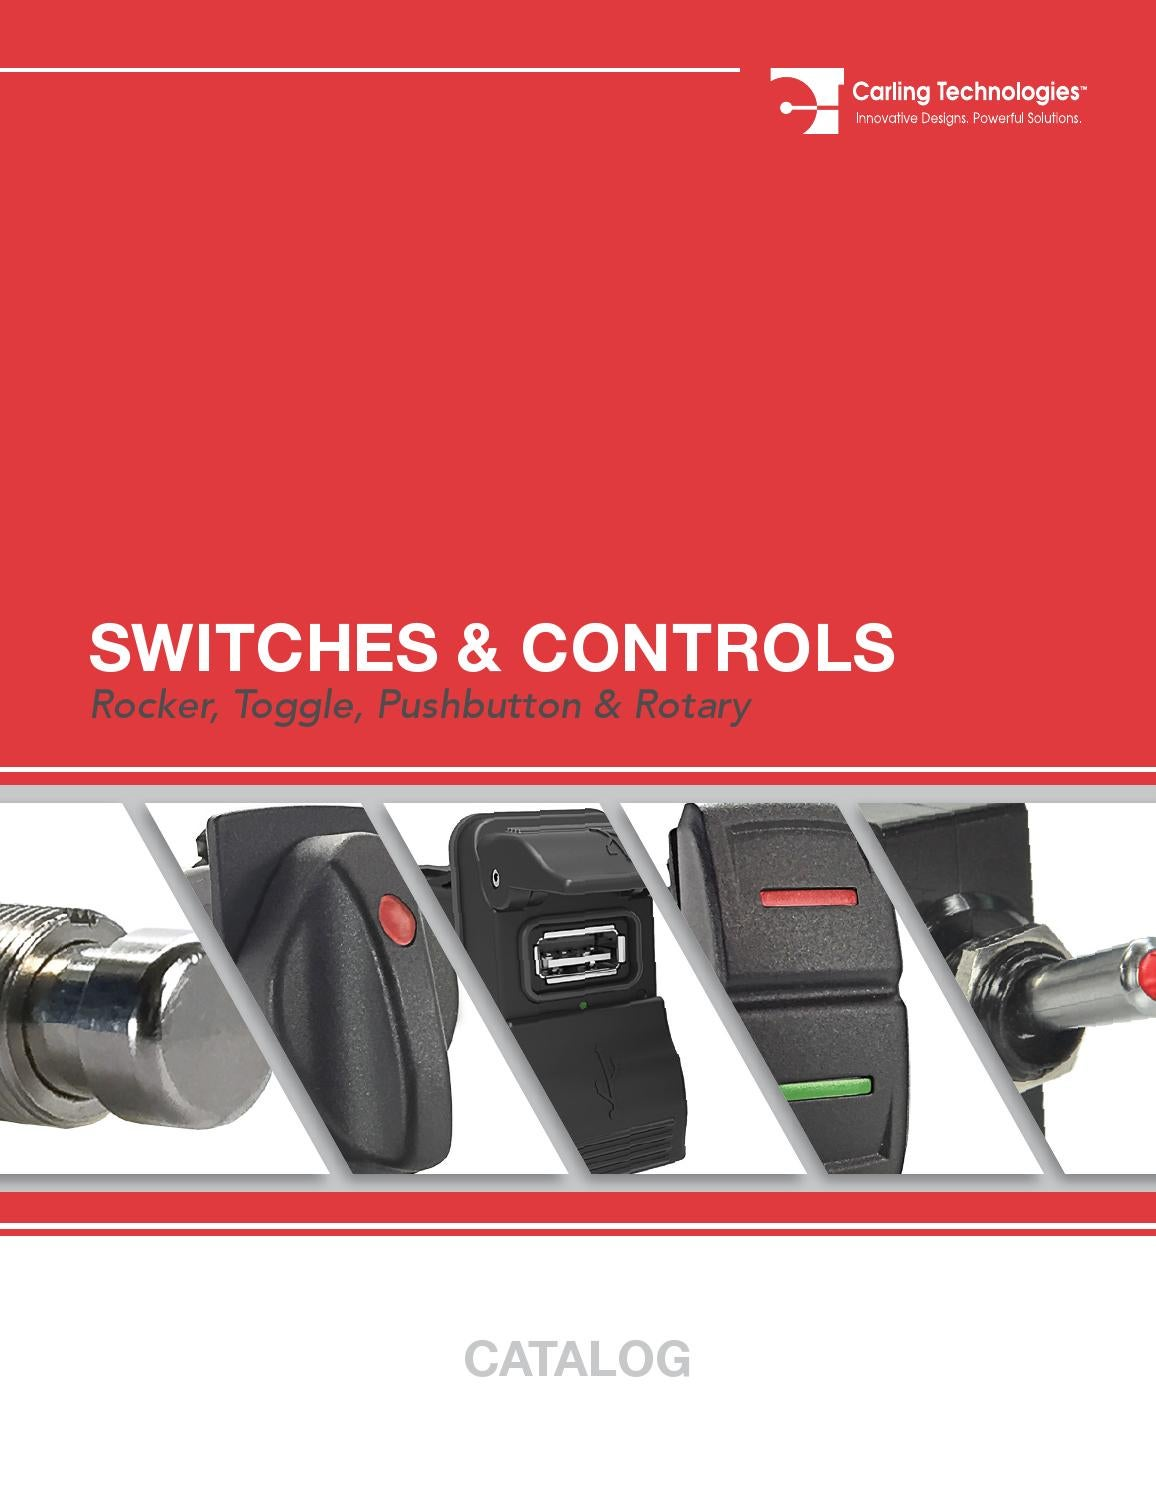 Carling Technologies Switch Catalog By Merchlin Issuu Wiring Diagram